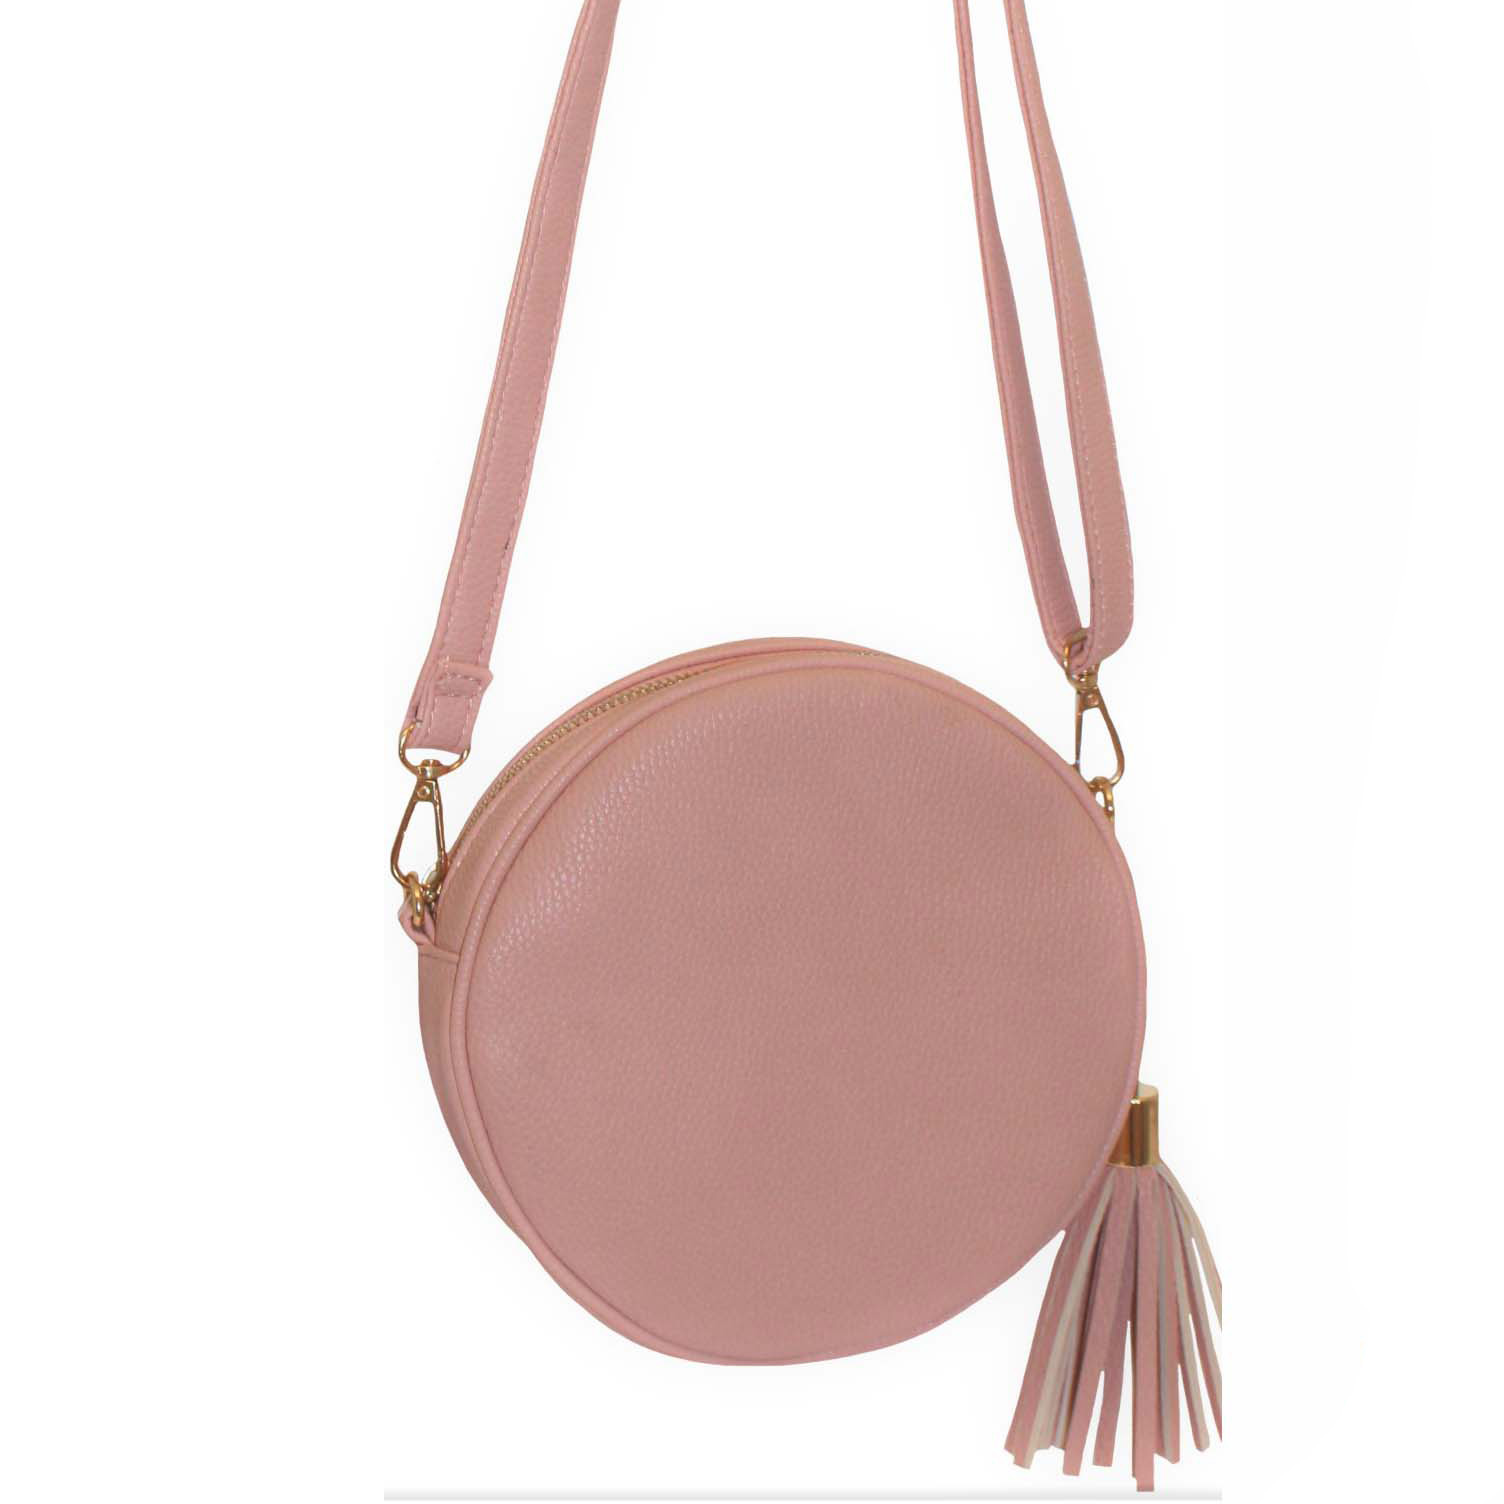 240 Nude - Structured Round Handbag ~ BAGZONE - Suppliers of Fashion ...